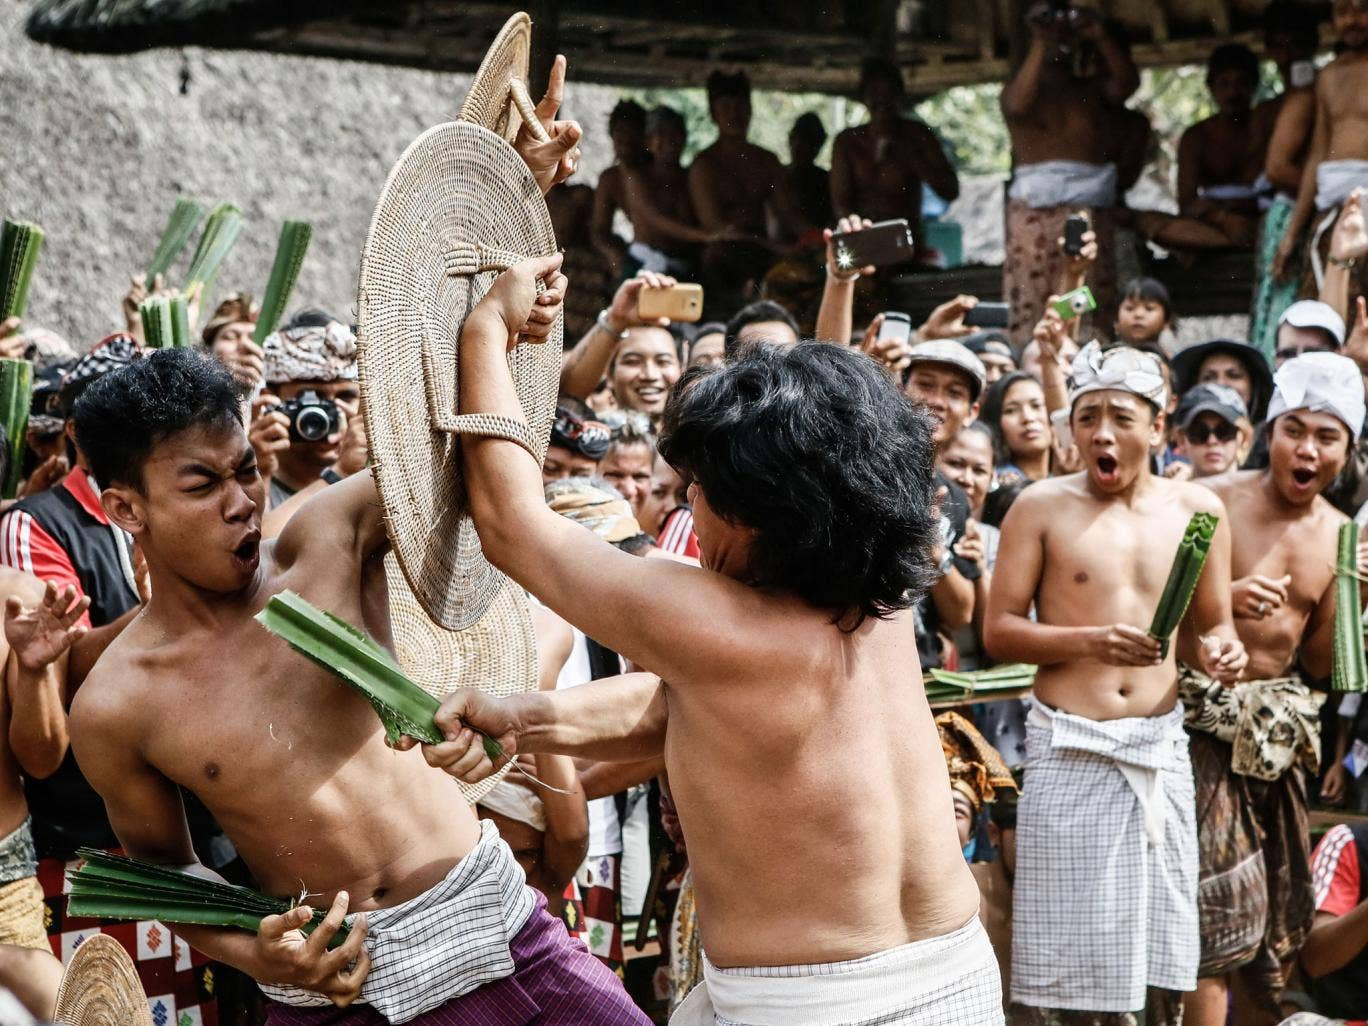 Two Tengananese men fight each other using thorny pandanus leaves in Tenganan Pagringsingan Village, Karangasem. One of the rituals during the ceremony is a Pandanus War or 'Mekare Kare', where two Tengananese men duel using thorny pandanus as their weapo